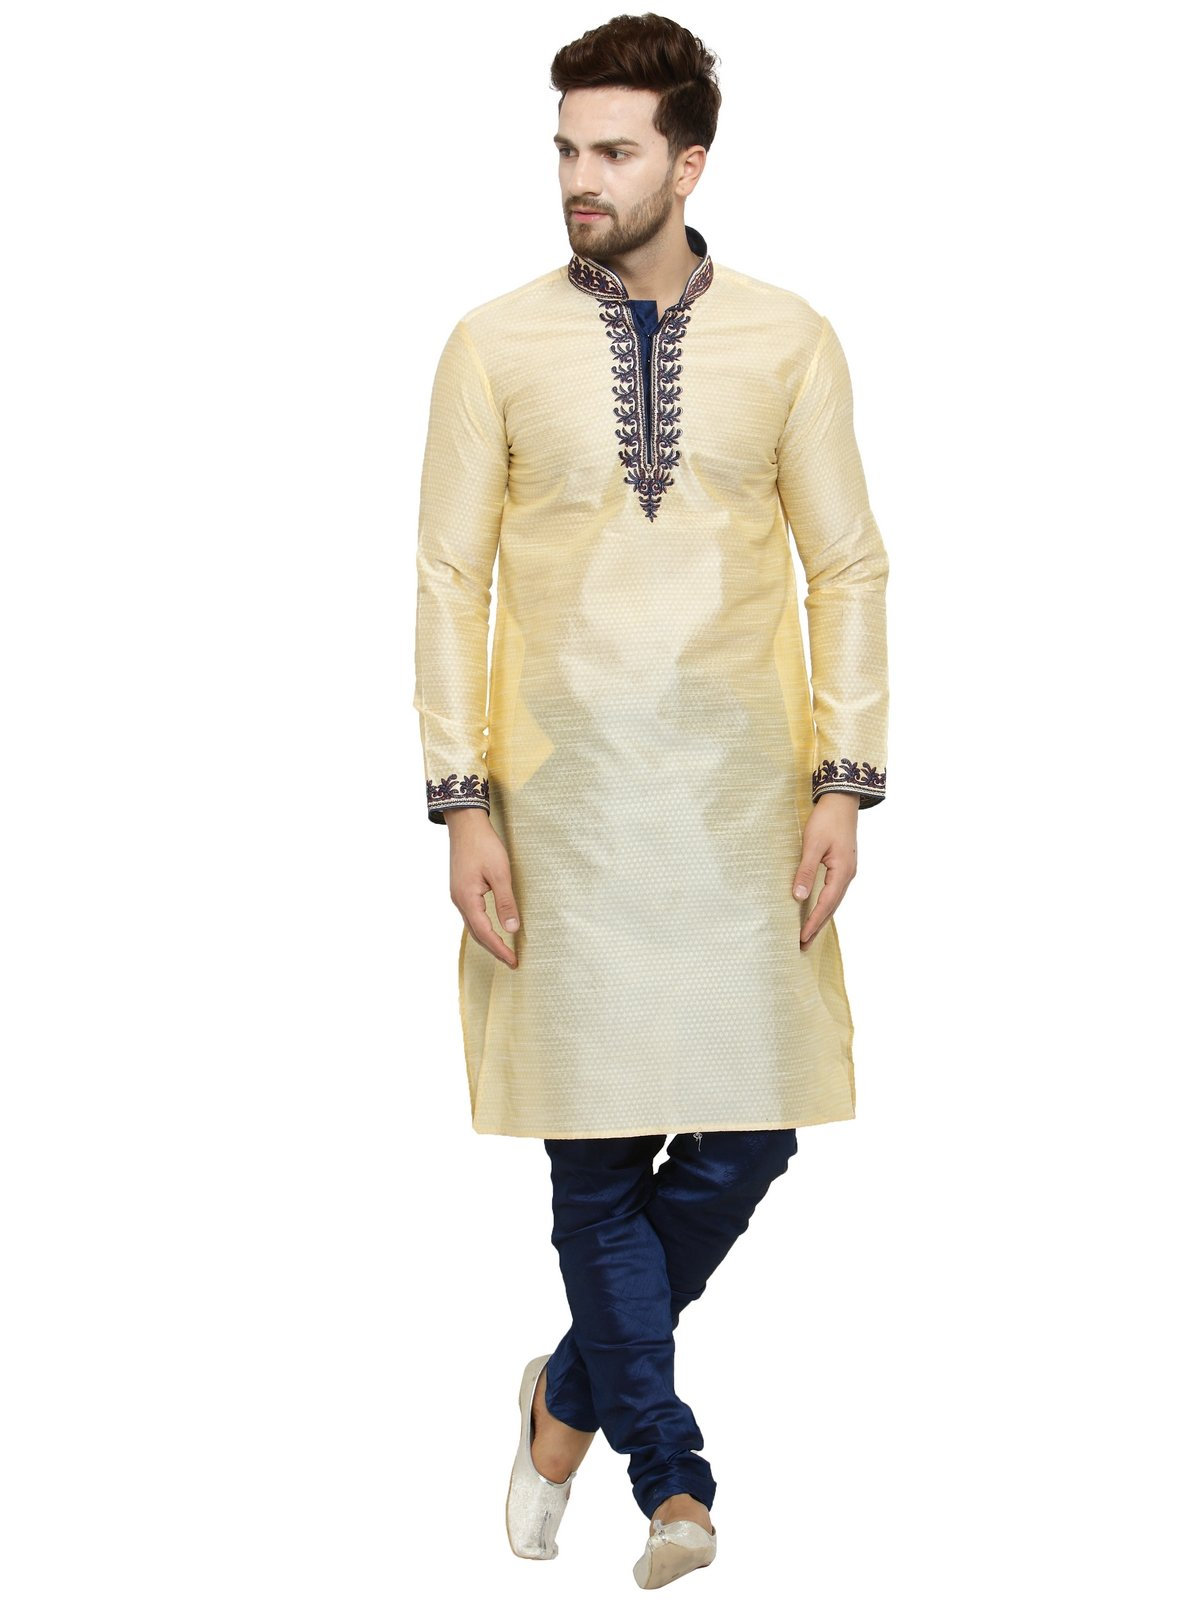 Larwa Men's Silk embroideded Kurta Pyjama Set Special for Festive, Wedding, Party